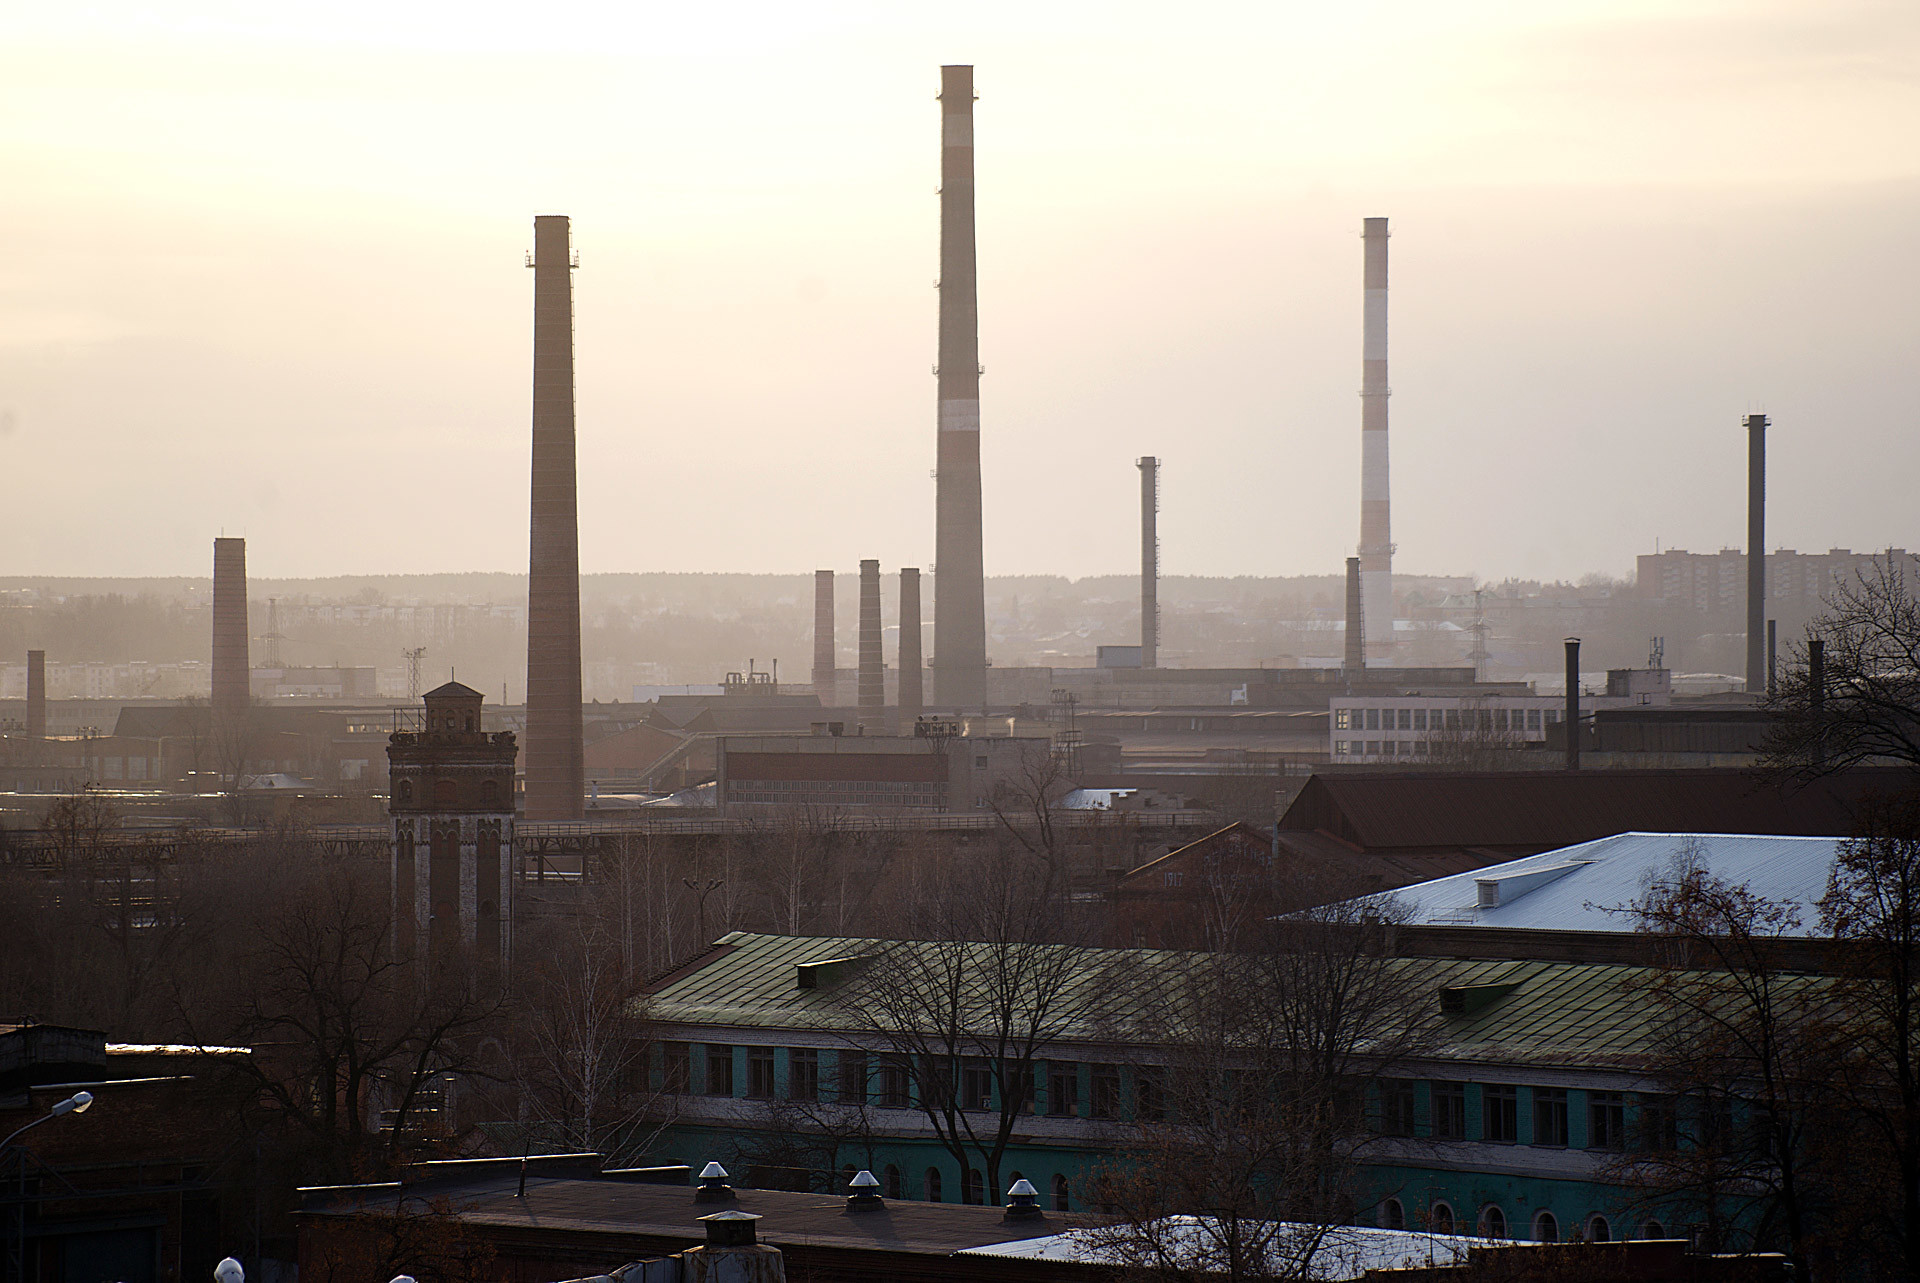 """Progressive"" district of Izhevsk looks like it can fit in your palm: Pipes, concrete, Factory smoke, a colorless sky."